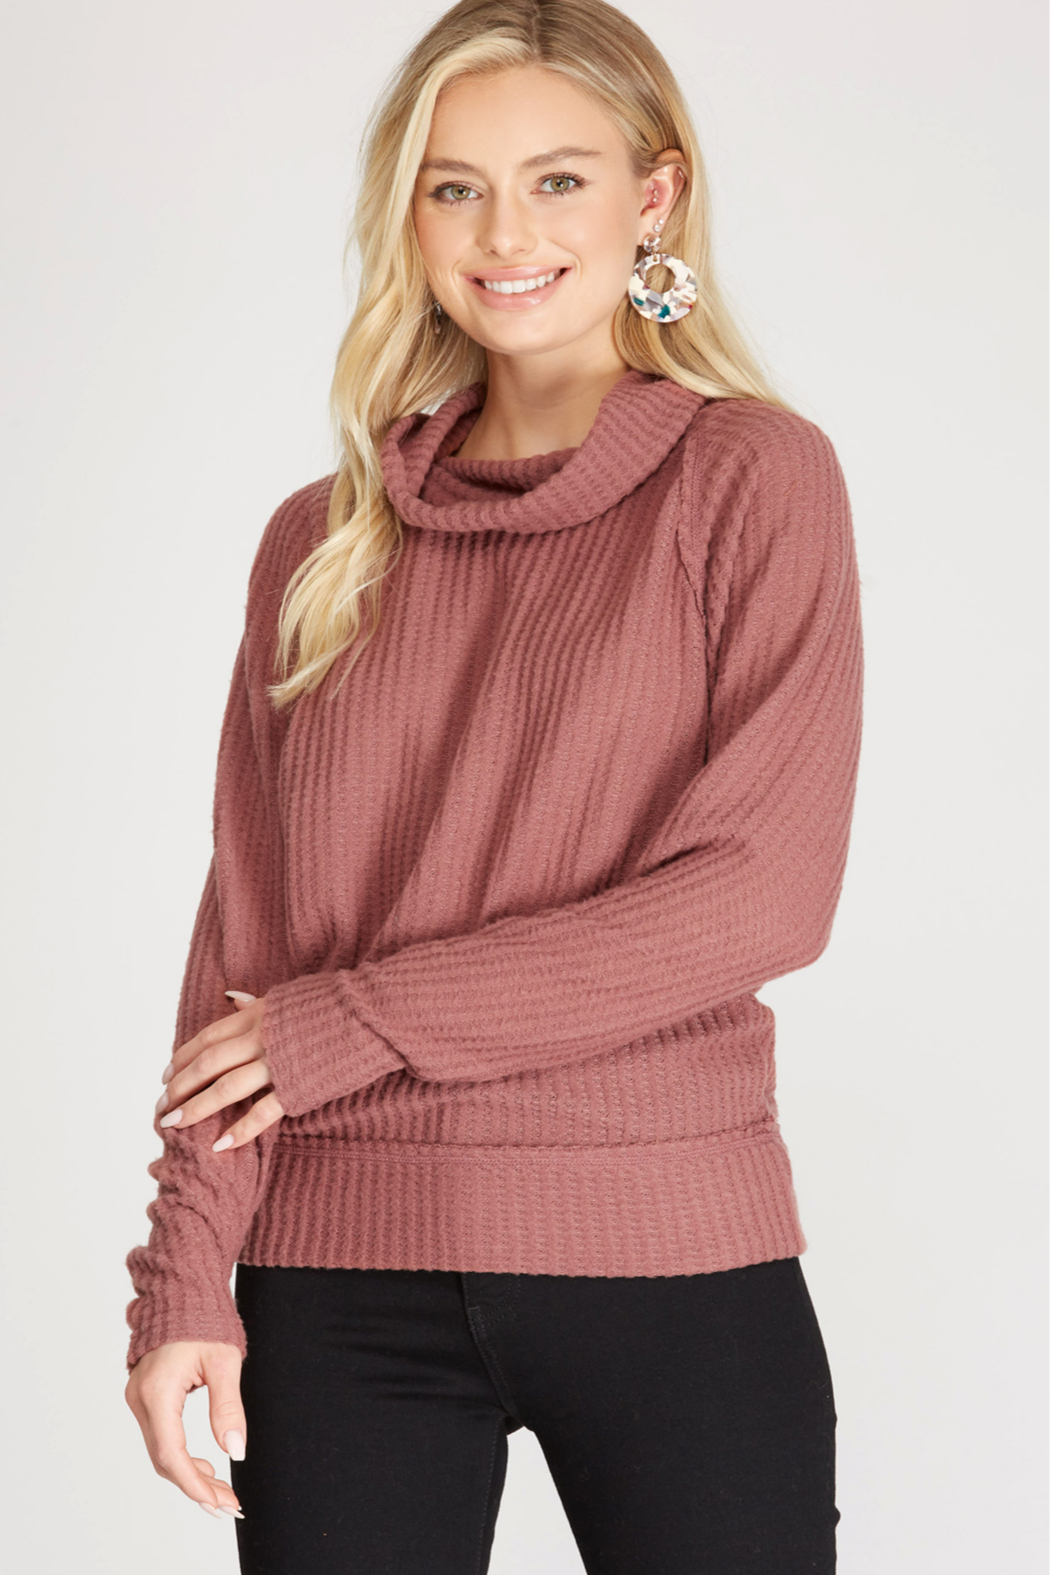 She and Sky LONG SLEEVE BRUSHED THERMAL KNIT TOP - Front Cropped Image